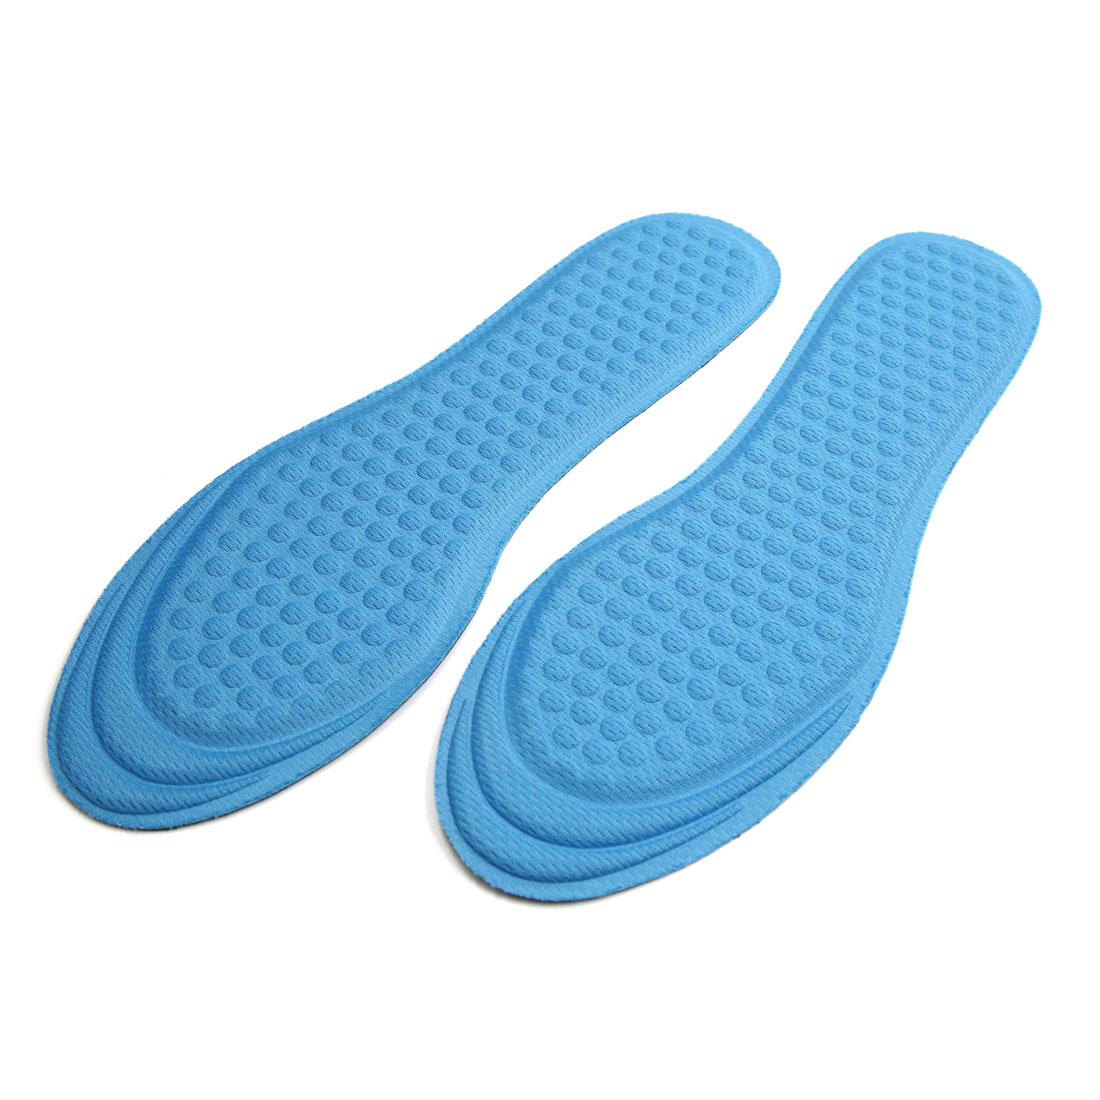 1 Pair Blue Sponge Breathable Anti-slip Sports Insert Insoles Shoes Pad Cushion